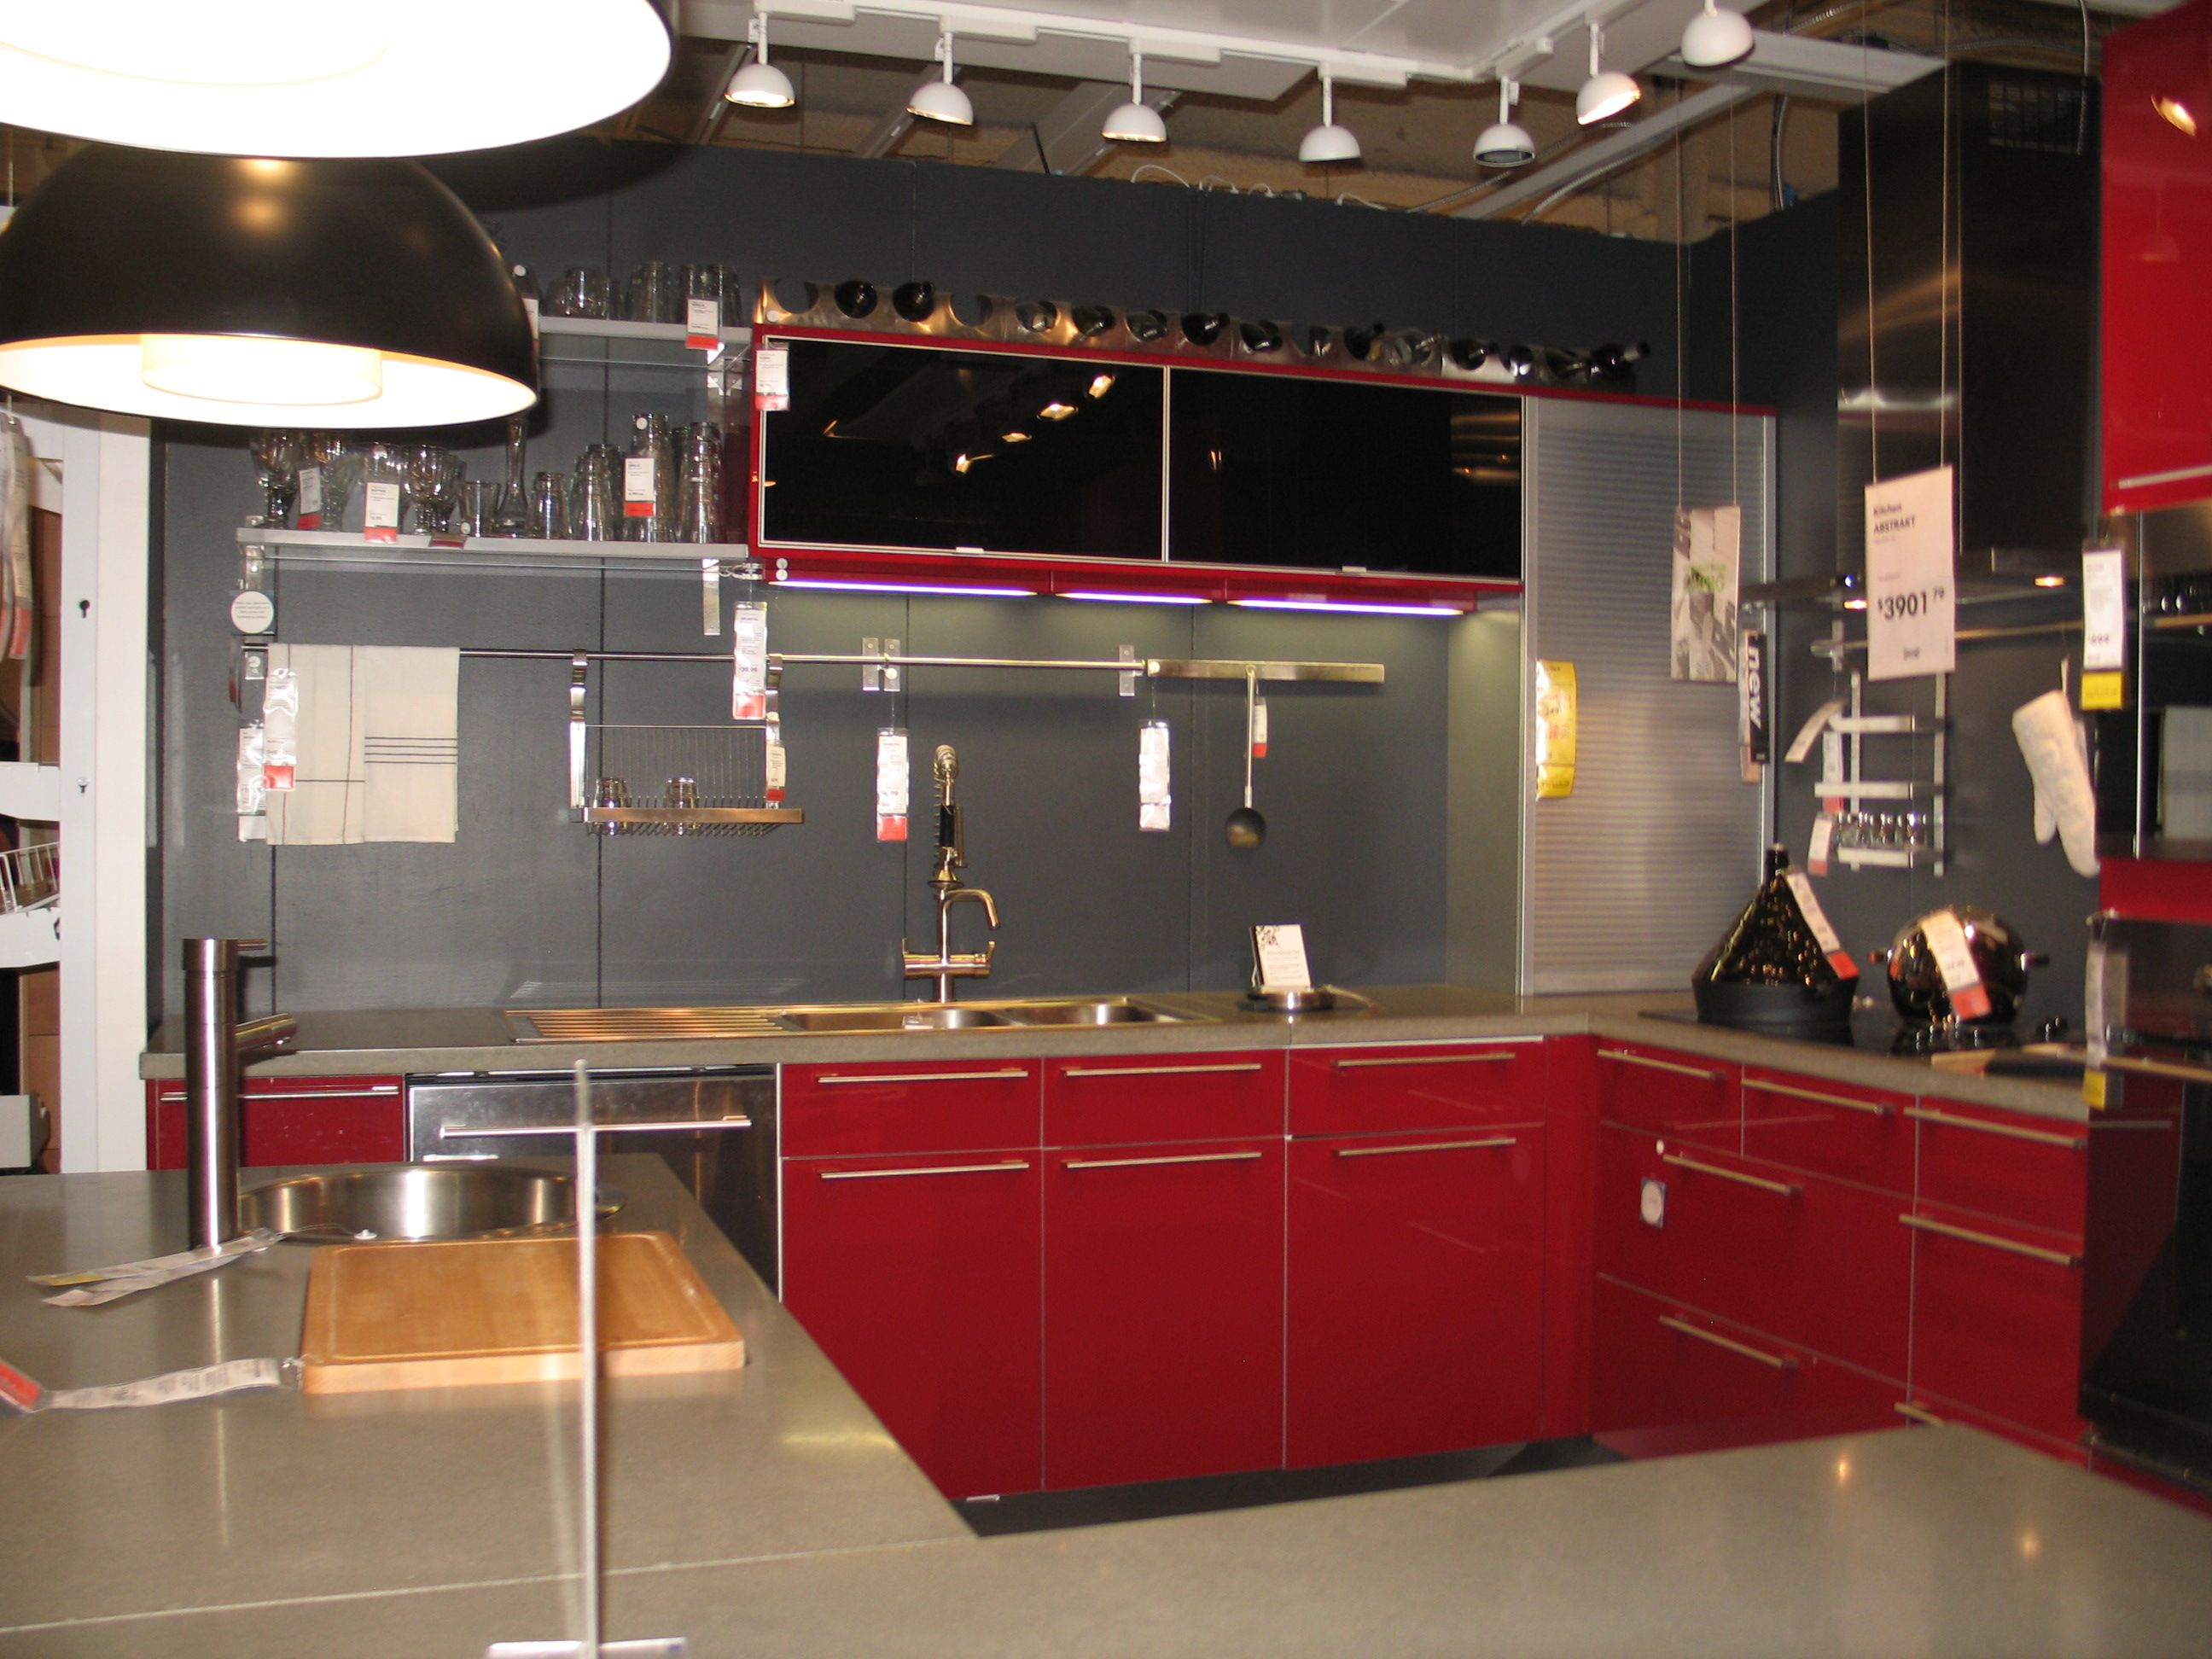 Simply love this elegant red kitchen design with the